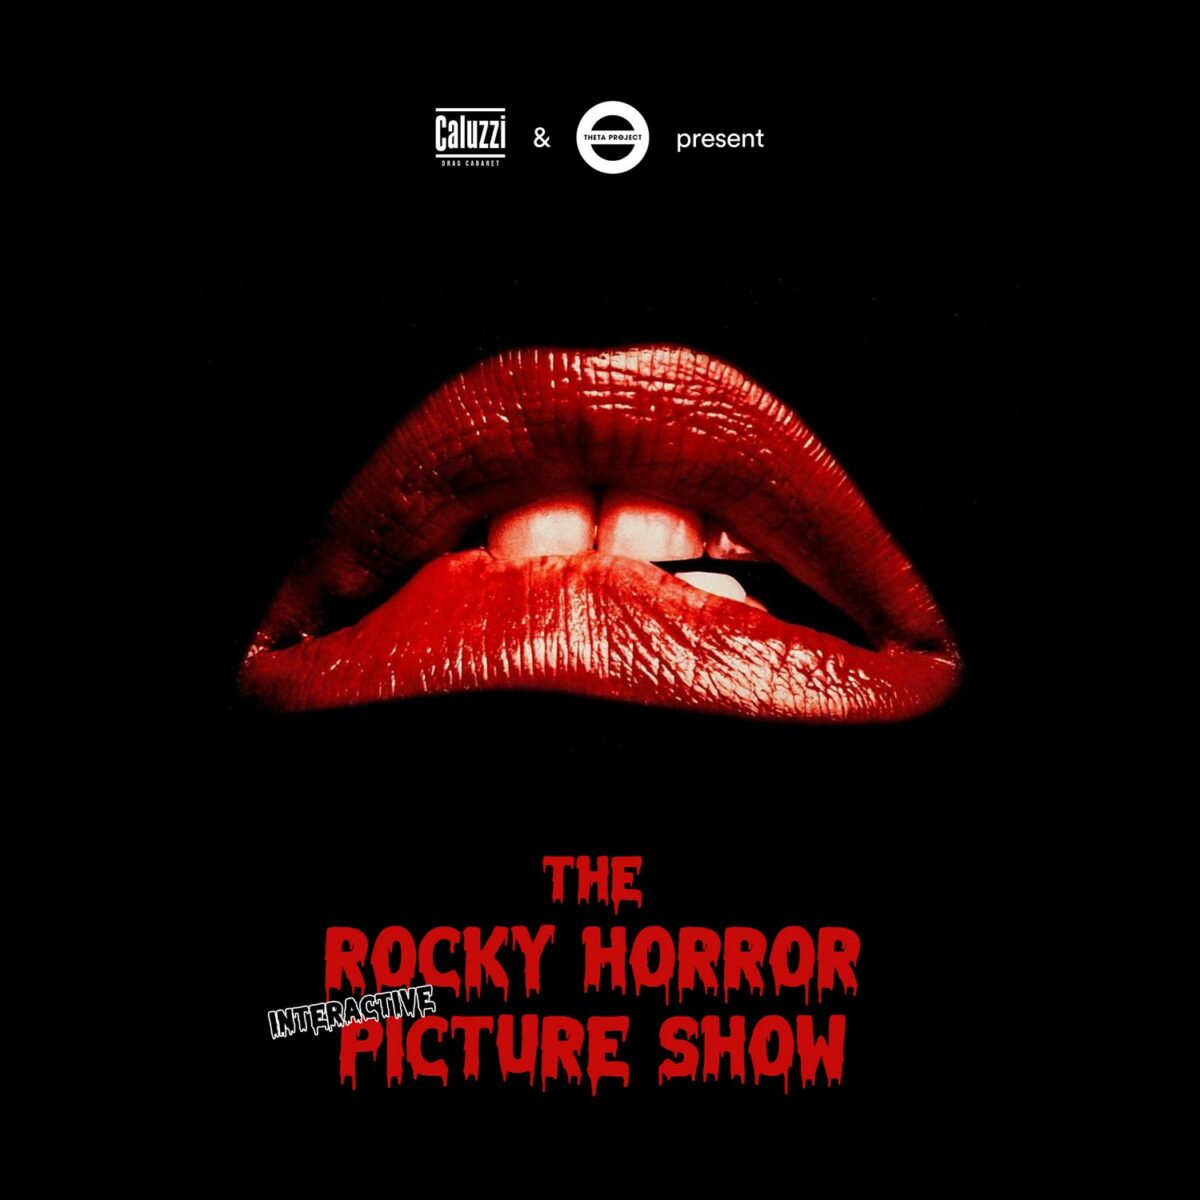 The Rocky Horror Interactive Picture Show – New date TBC